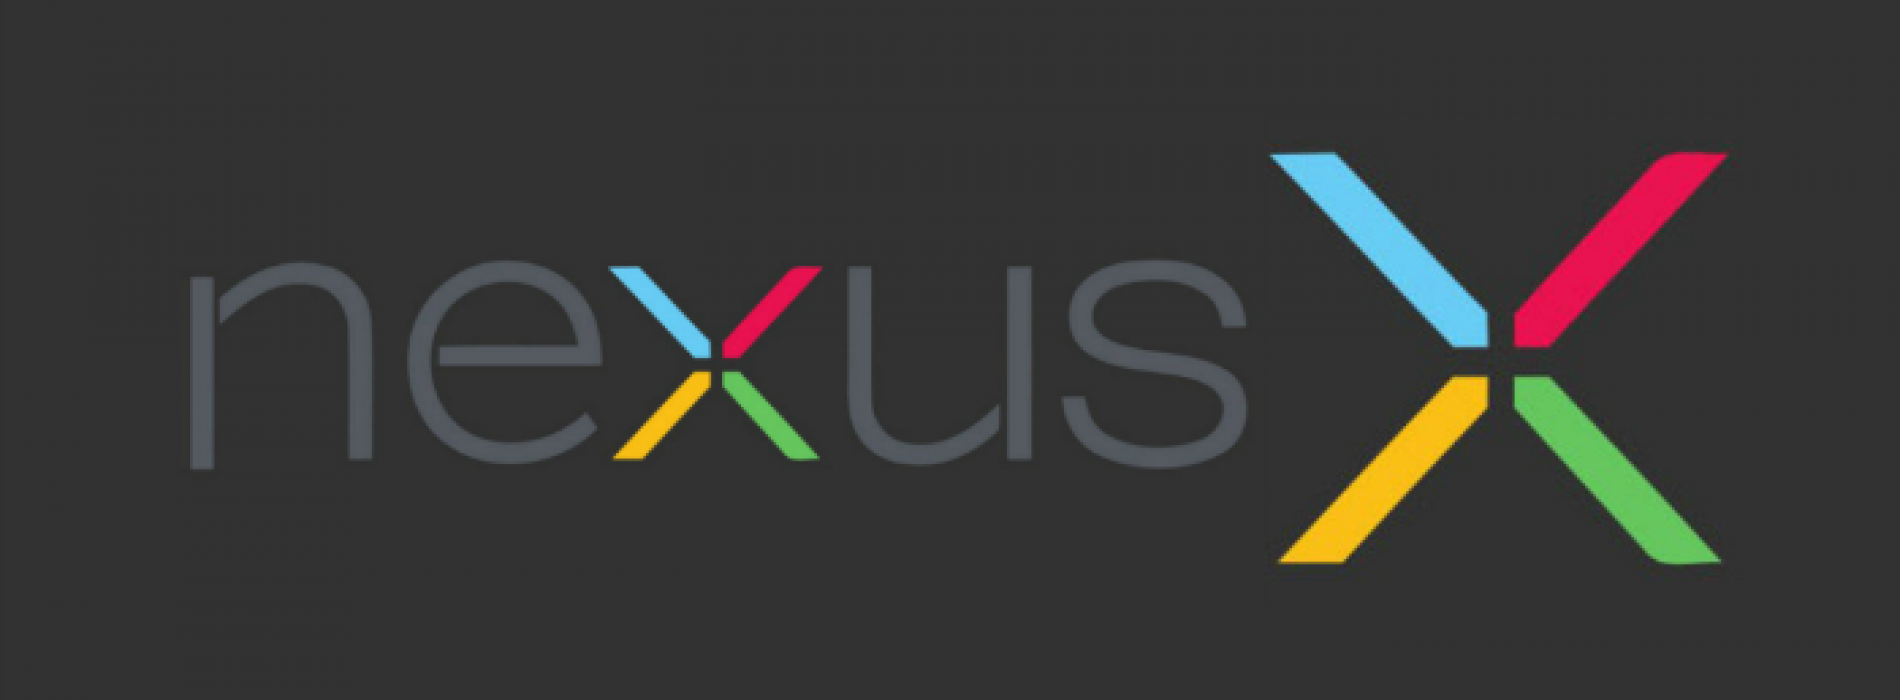 Google 'Nexus X' to be made by Moto and released near Halloween, report says